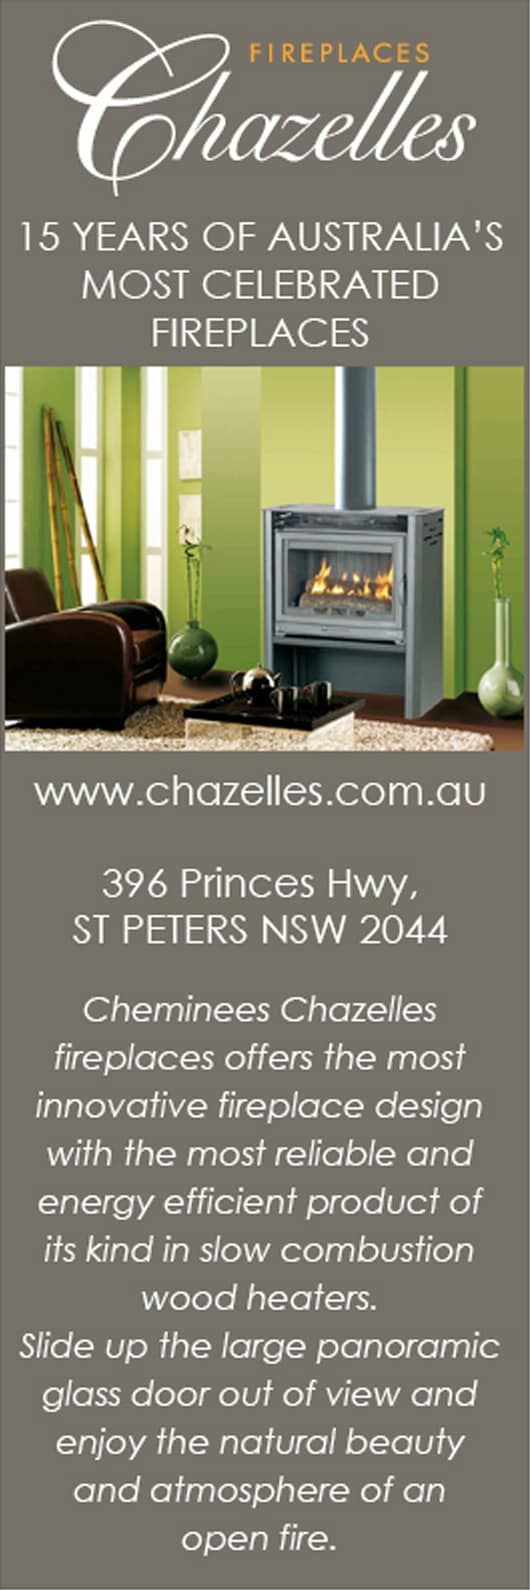 chazelles fireplaces fireplaces u0026 fireplace accessories 396